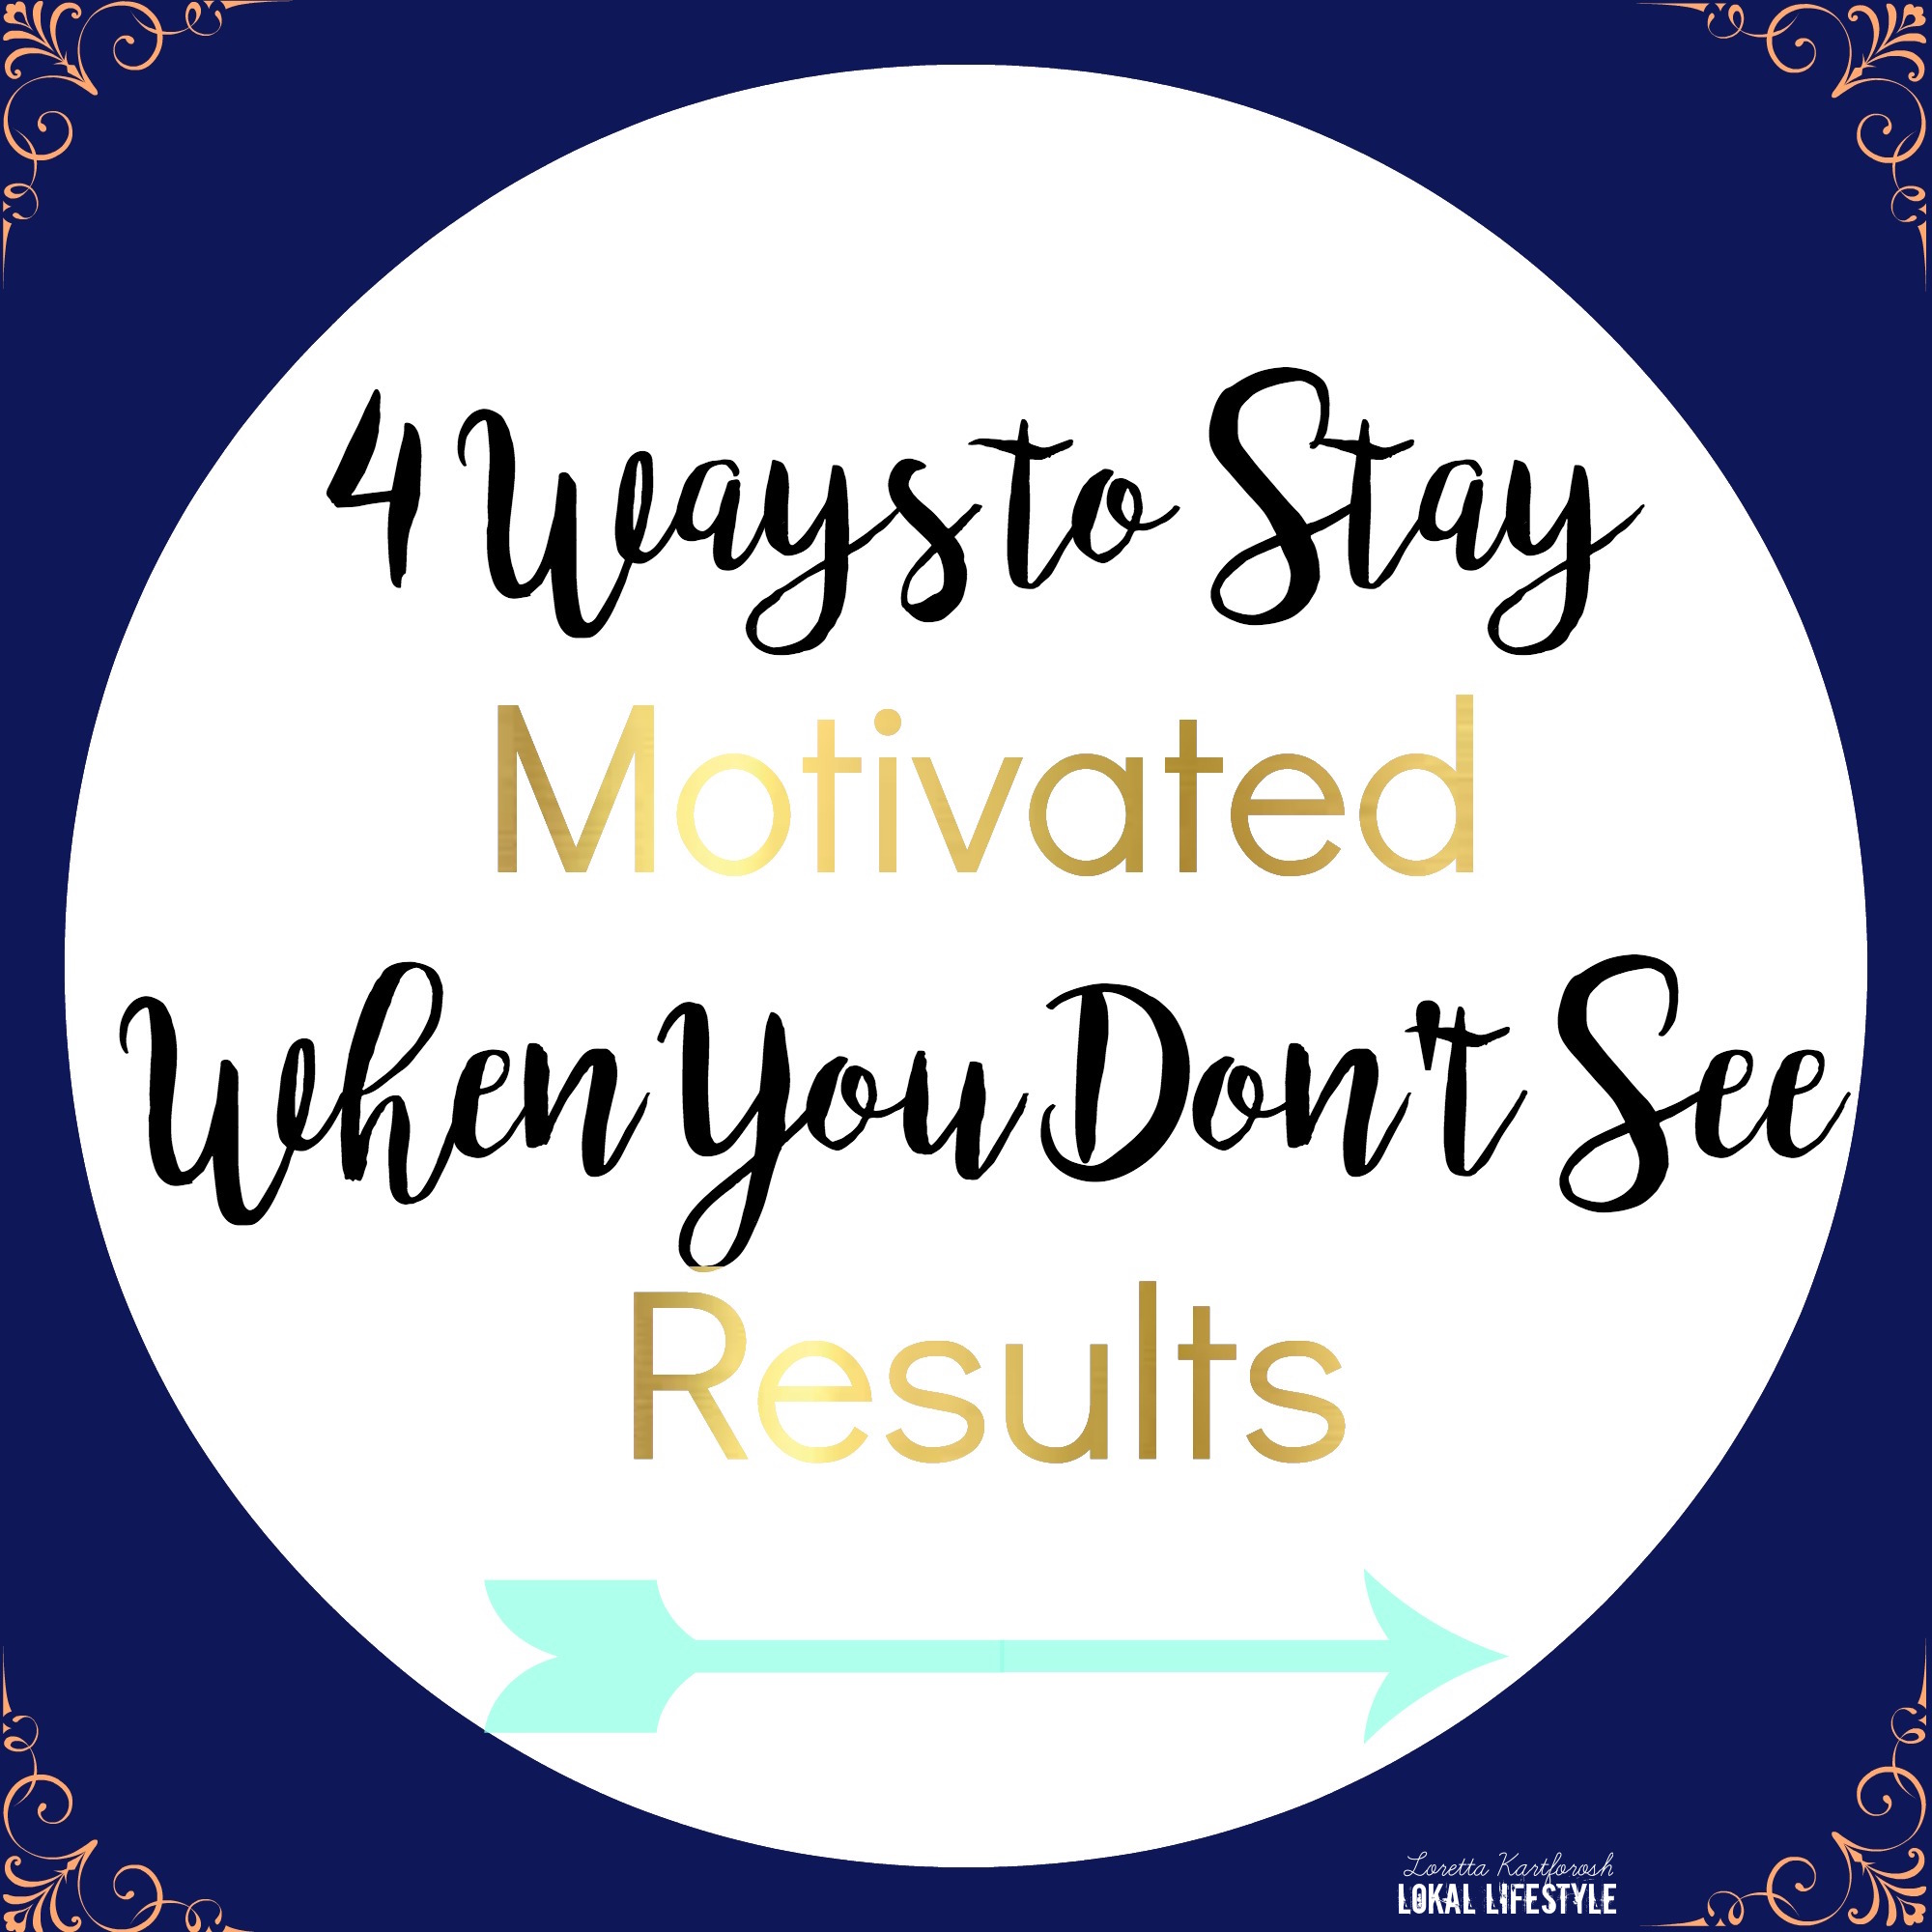 4 ways to stay motivated when you don't see results. www.LokalLifestyle.com